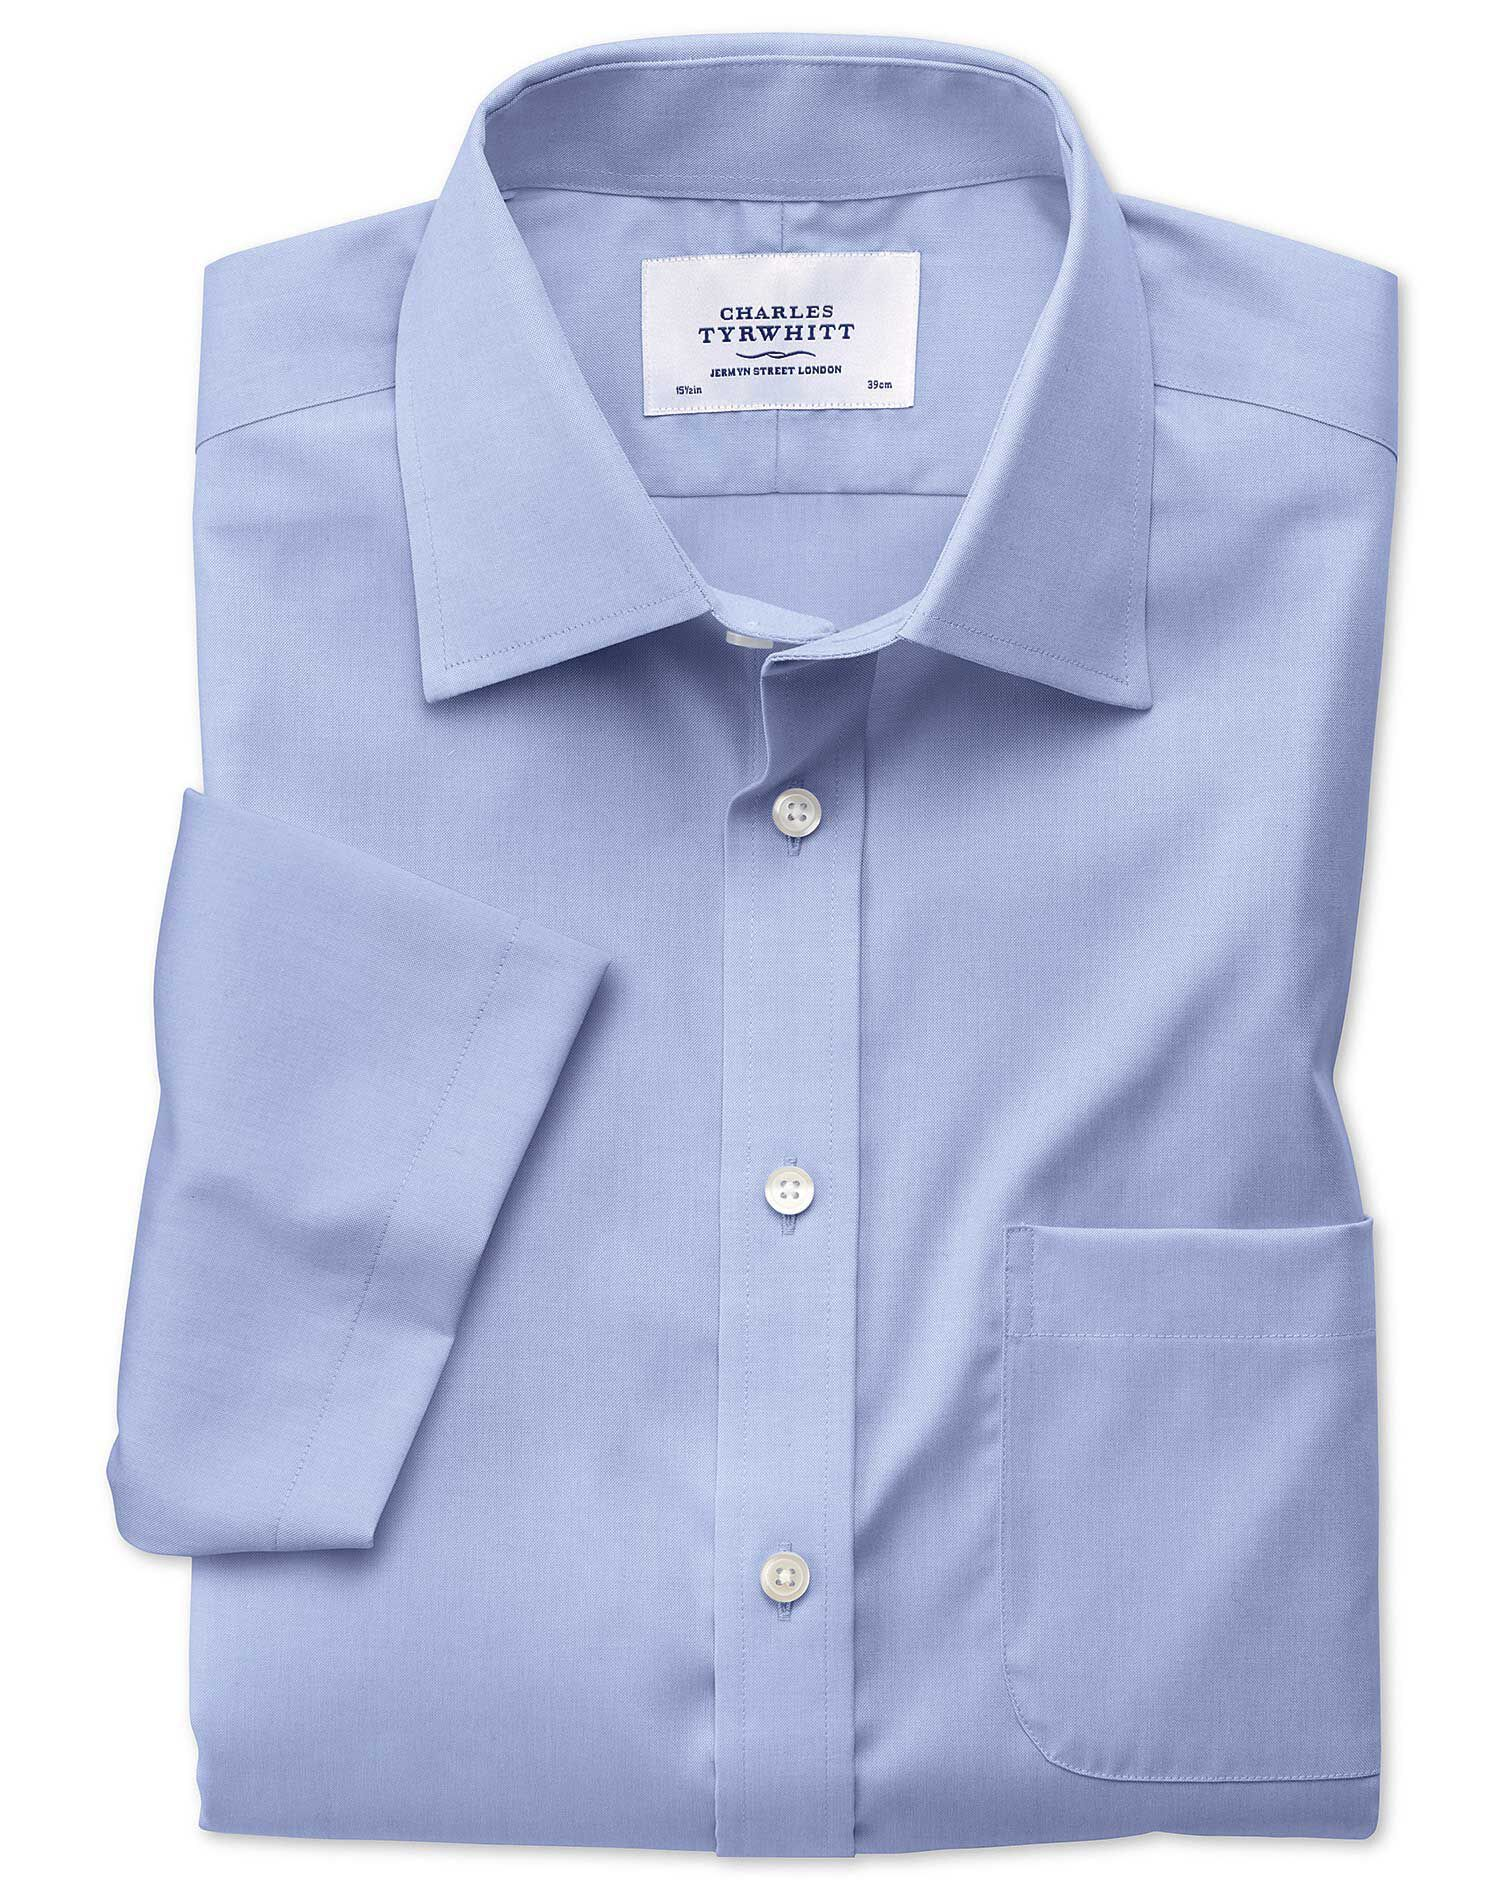 Classic Fit Non-Iron Pinpoint Short Sleeve Sky Blue Cotton Formal Shirt Size 17/Short by Charles Tyr